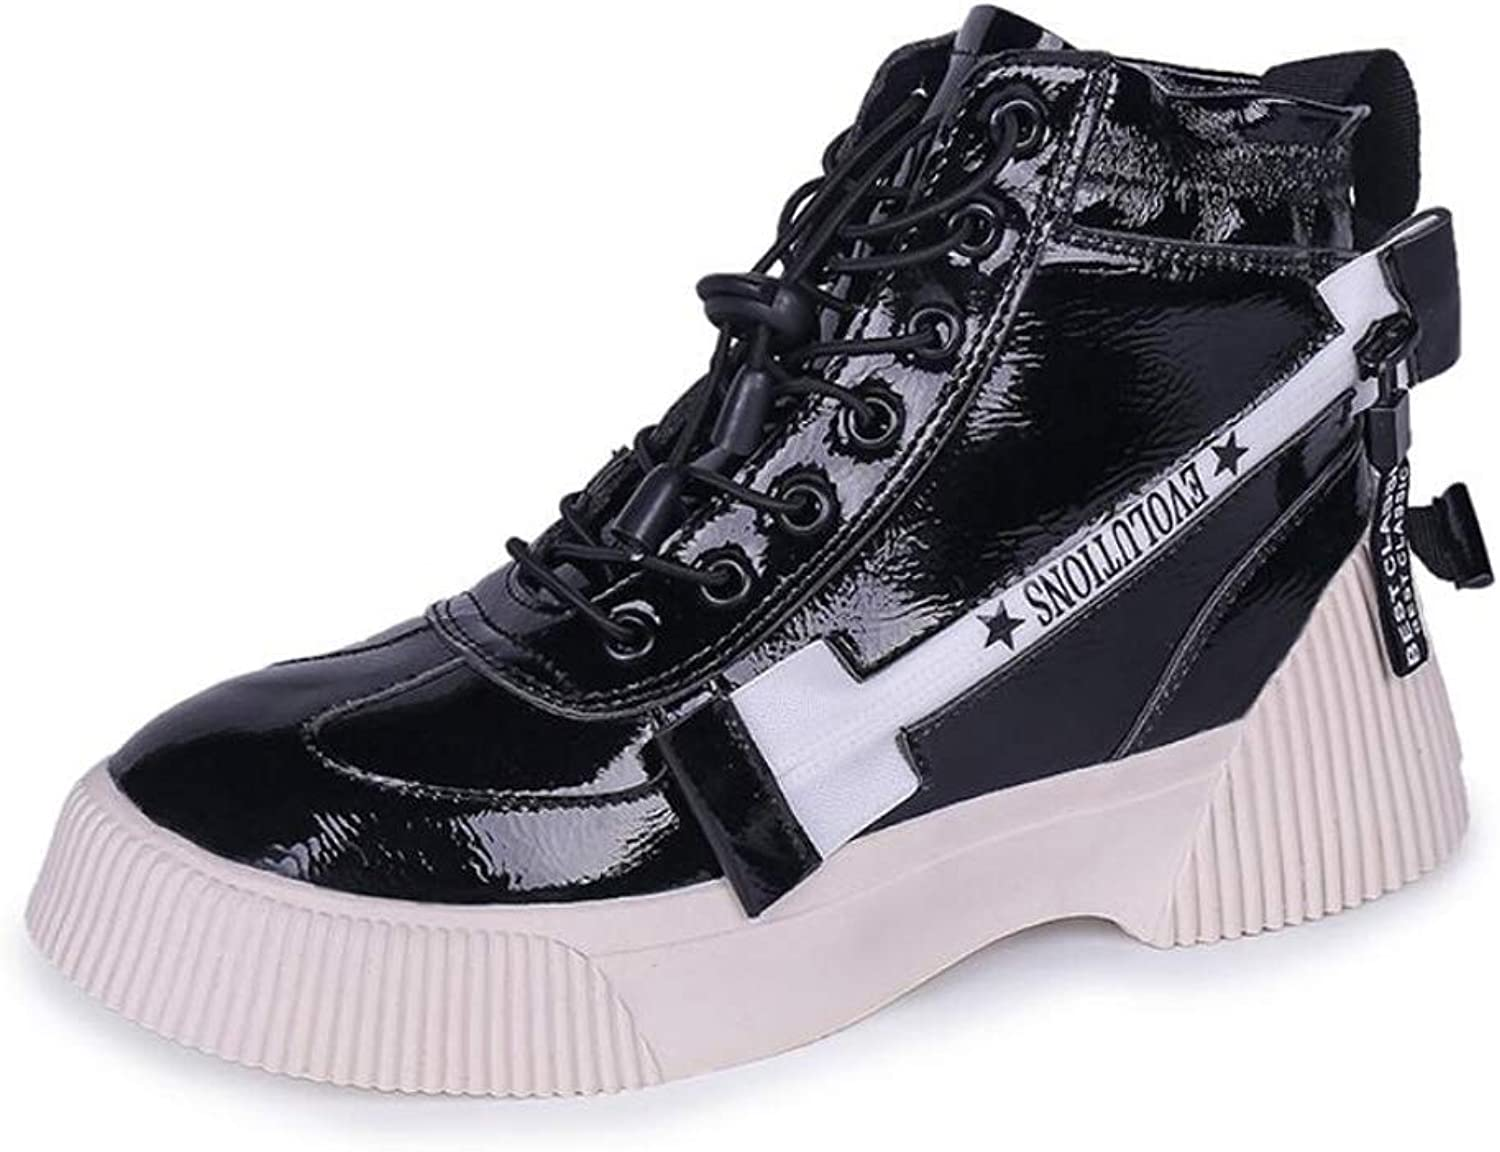 Womens High Top Hip Hop Dance Sneakers Fashion Pop Cool Casual High Top Sneaker shoes